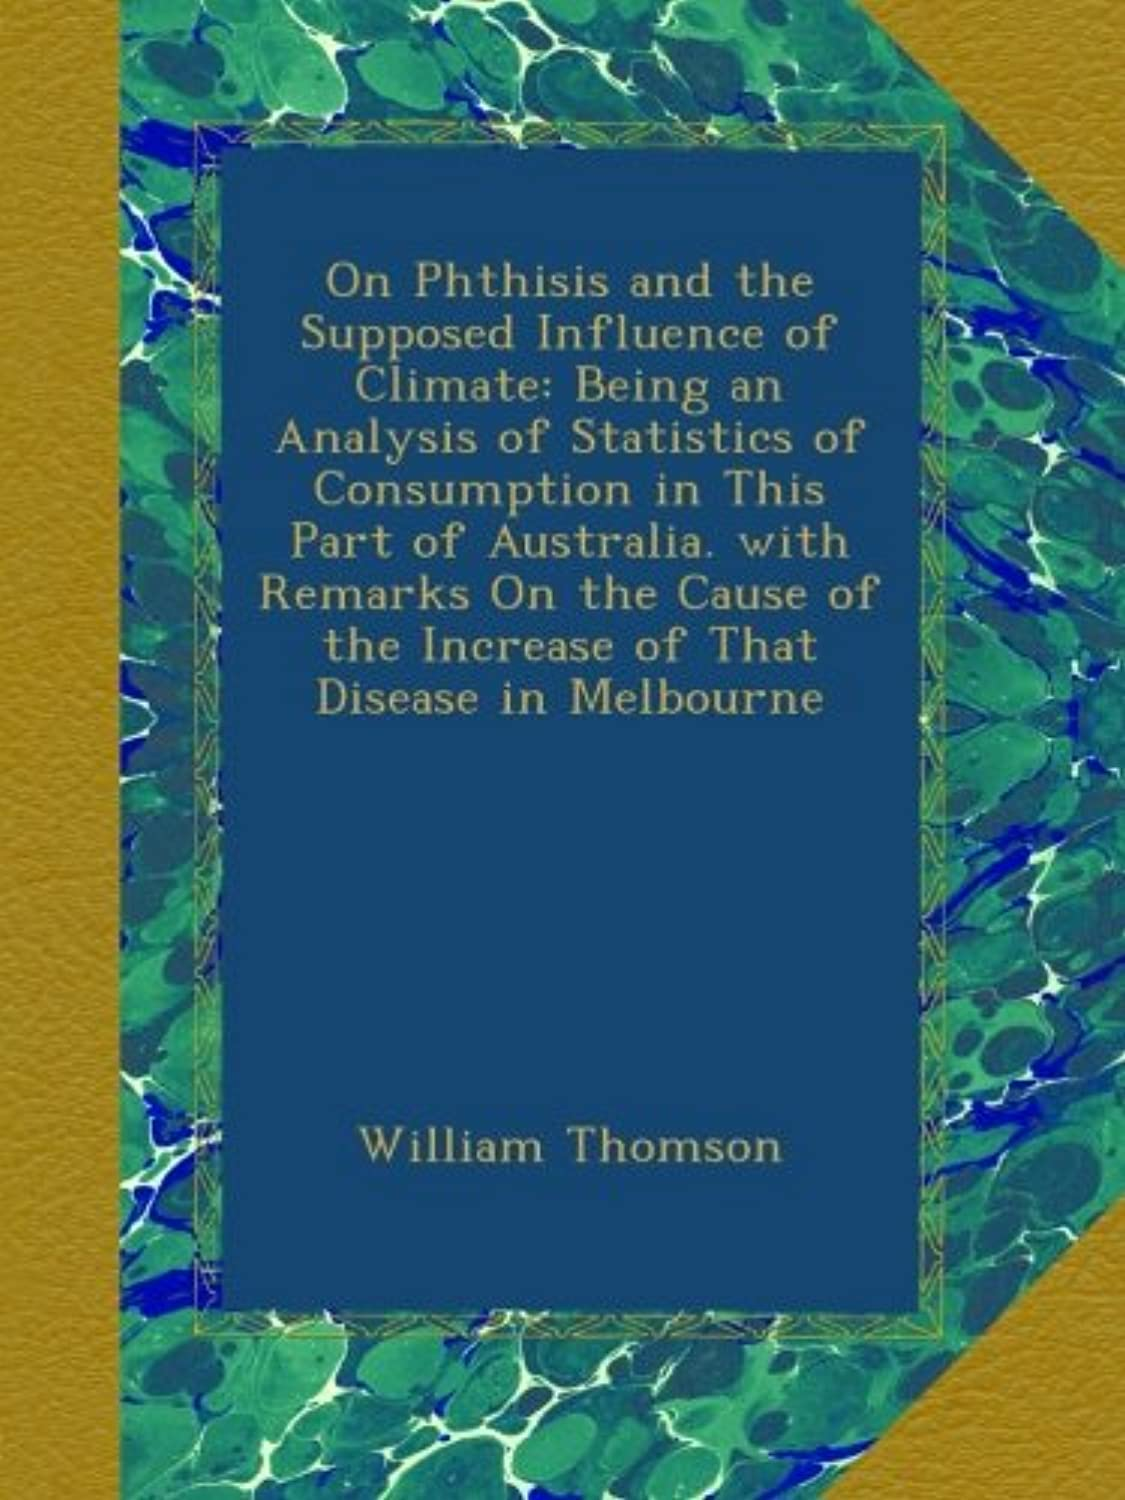 On Phthisis and the Supposed Influence of Climate: Being an Analysis of Statistics of Consumption in This Part of Australia. with Remarks On the Cause of the Increase of That Disease in Melbourne